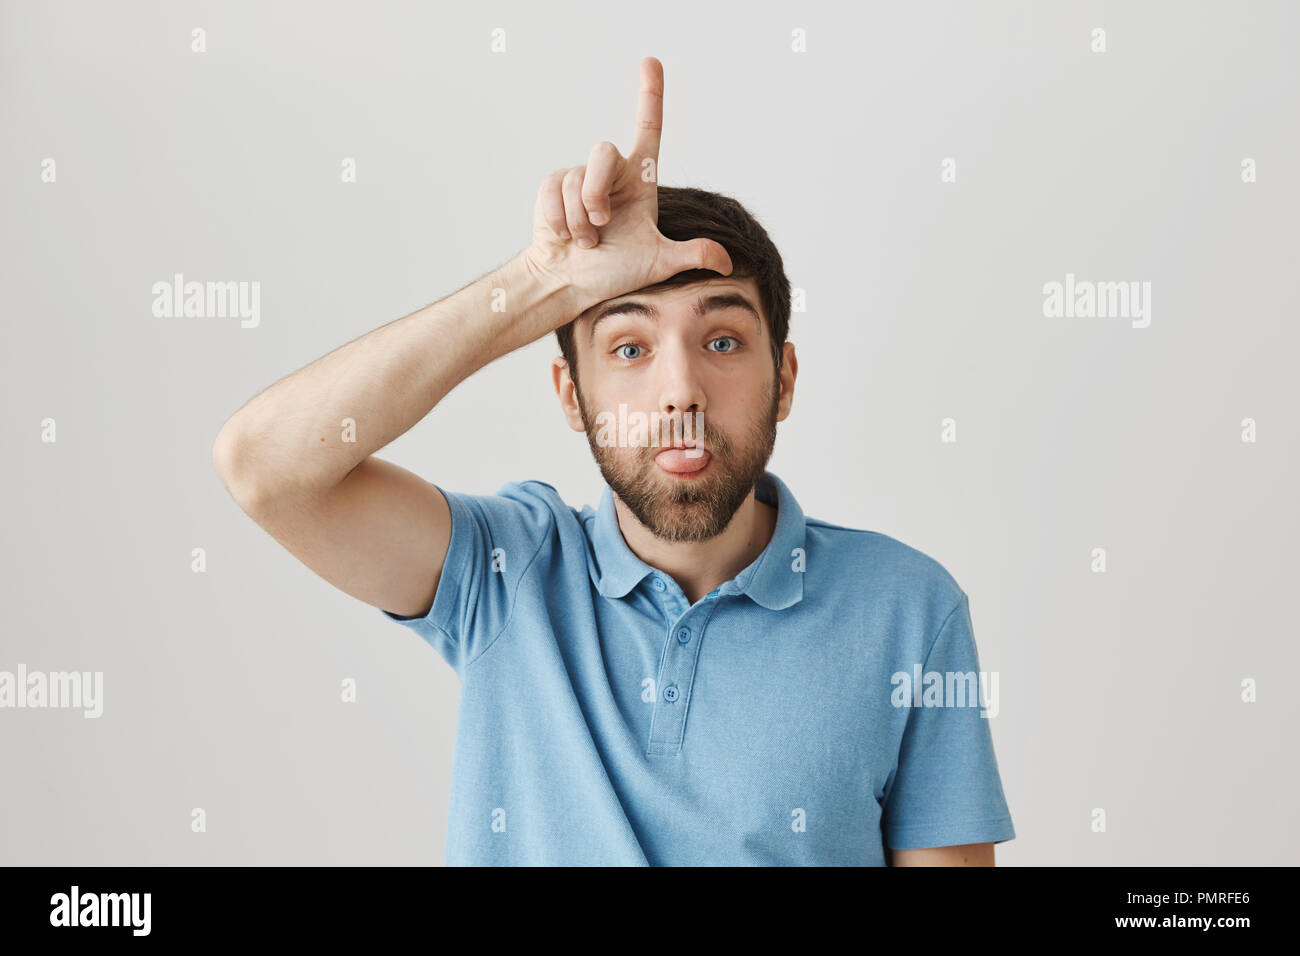 Portrait of cute bearded caucasian guy sticking out tongue and holding hand over forehead in loser gesture, standing against gray background. Impolite man mocking his coworker who lost bet - Stock Image